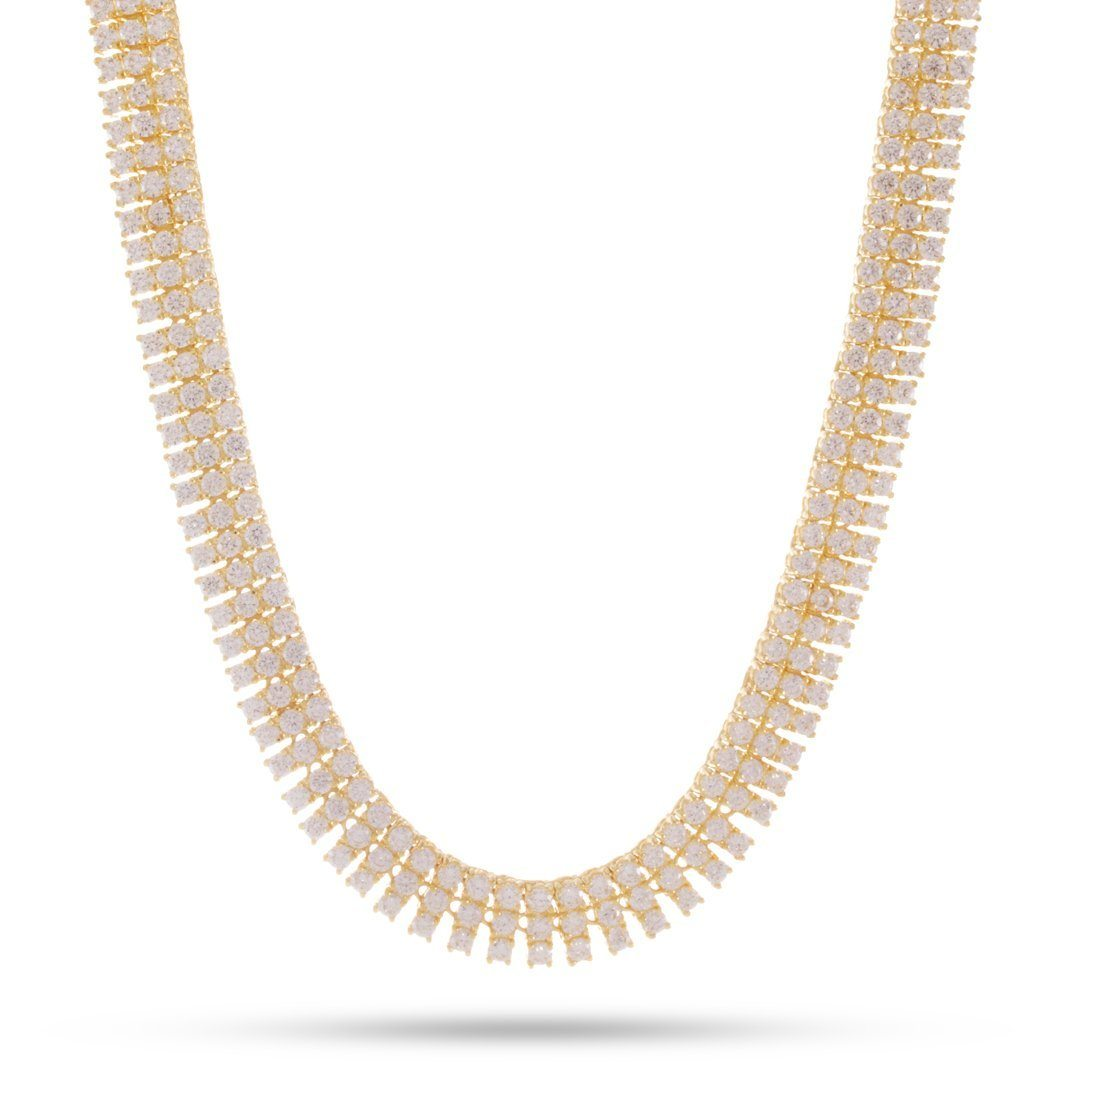 Image of 3 Row 14K Gold Tennis Necklace